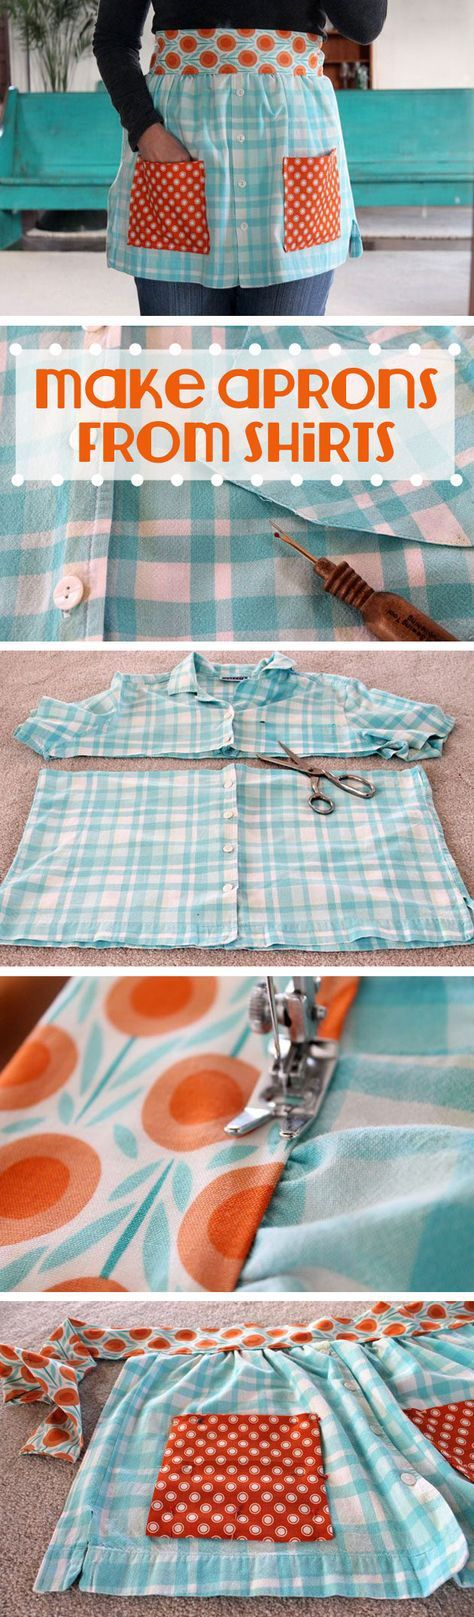 How to Make Aprons From Shirts                                                                                                                                                                                 More